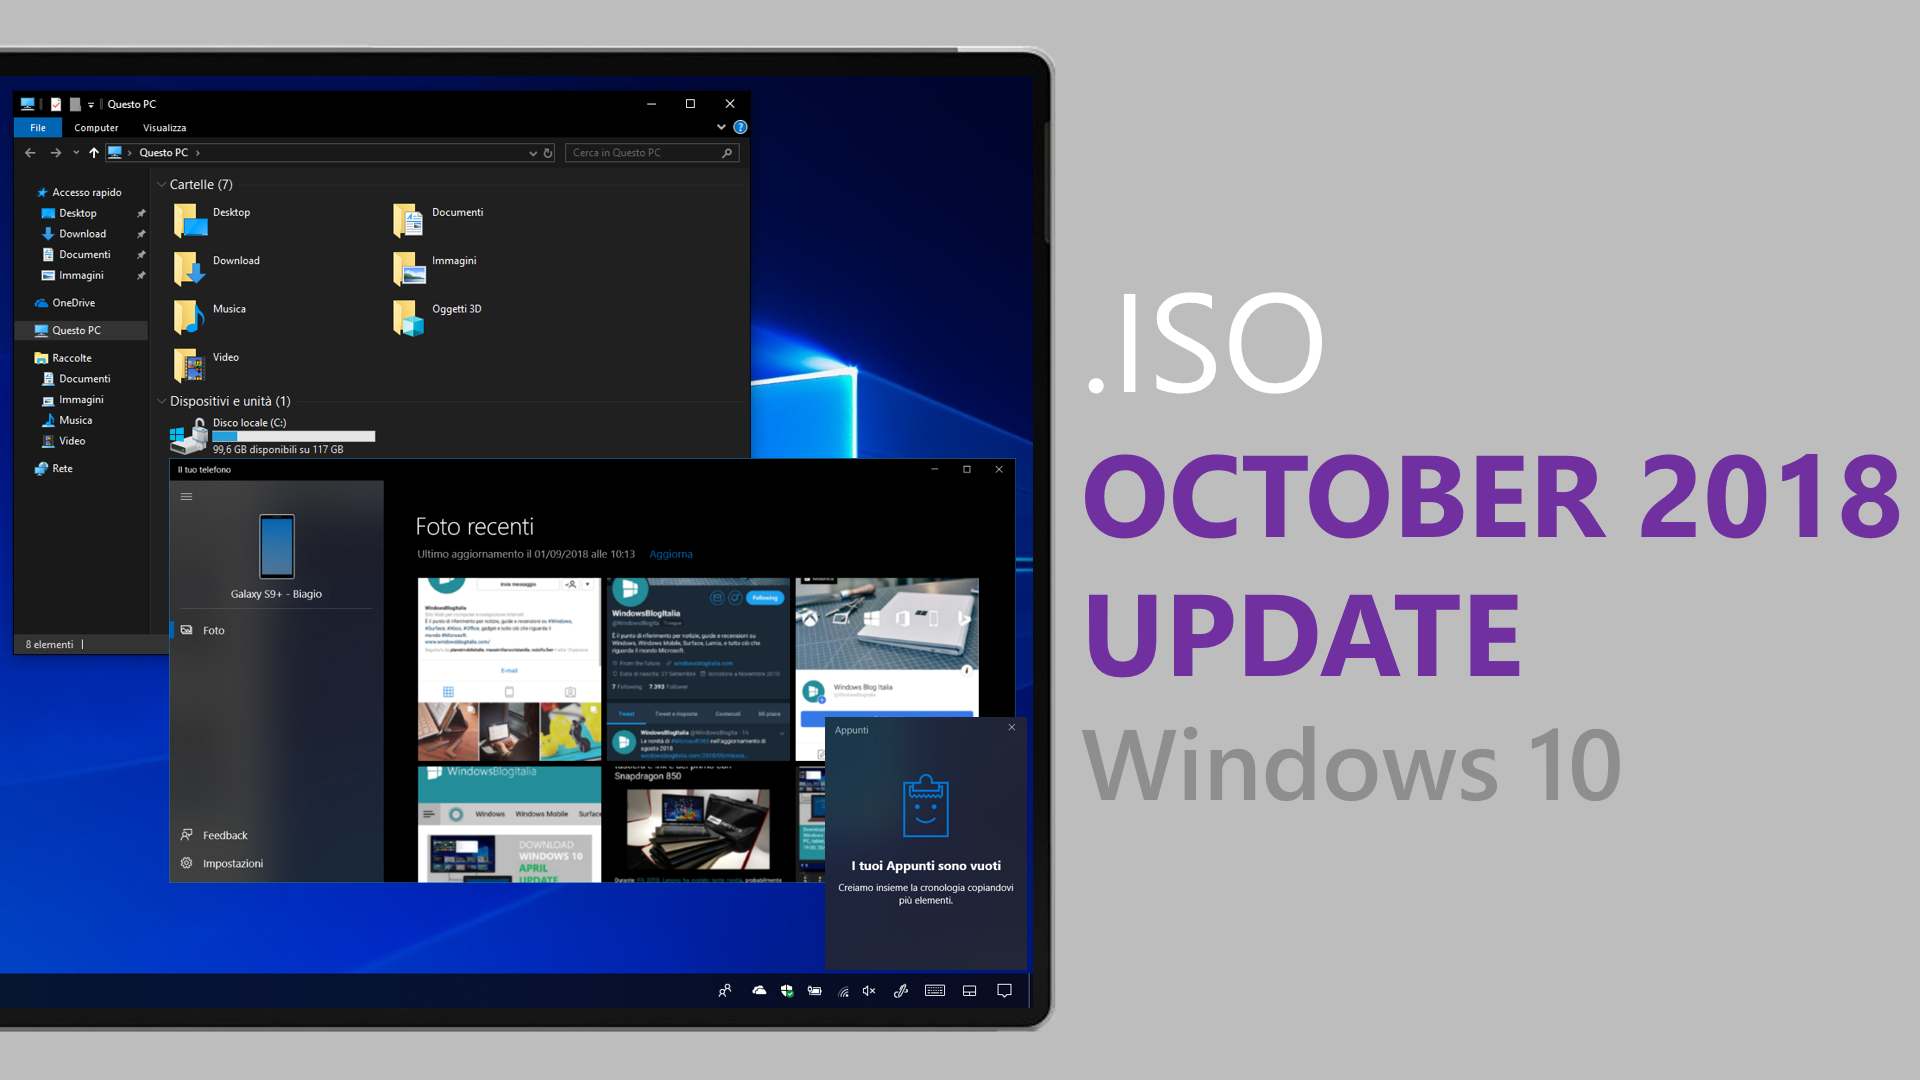 ISO Windows 10 October 2018 Update